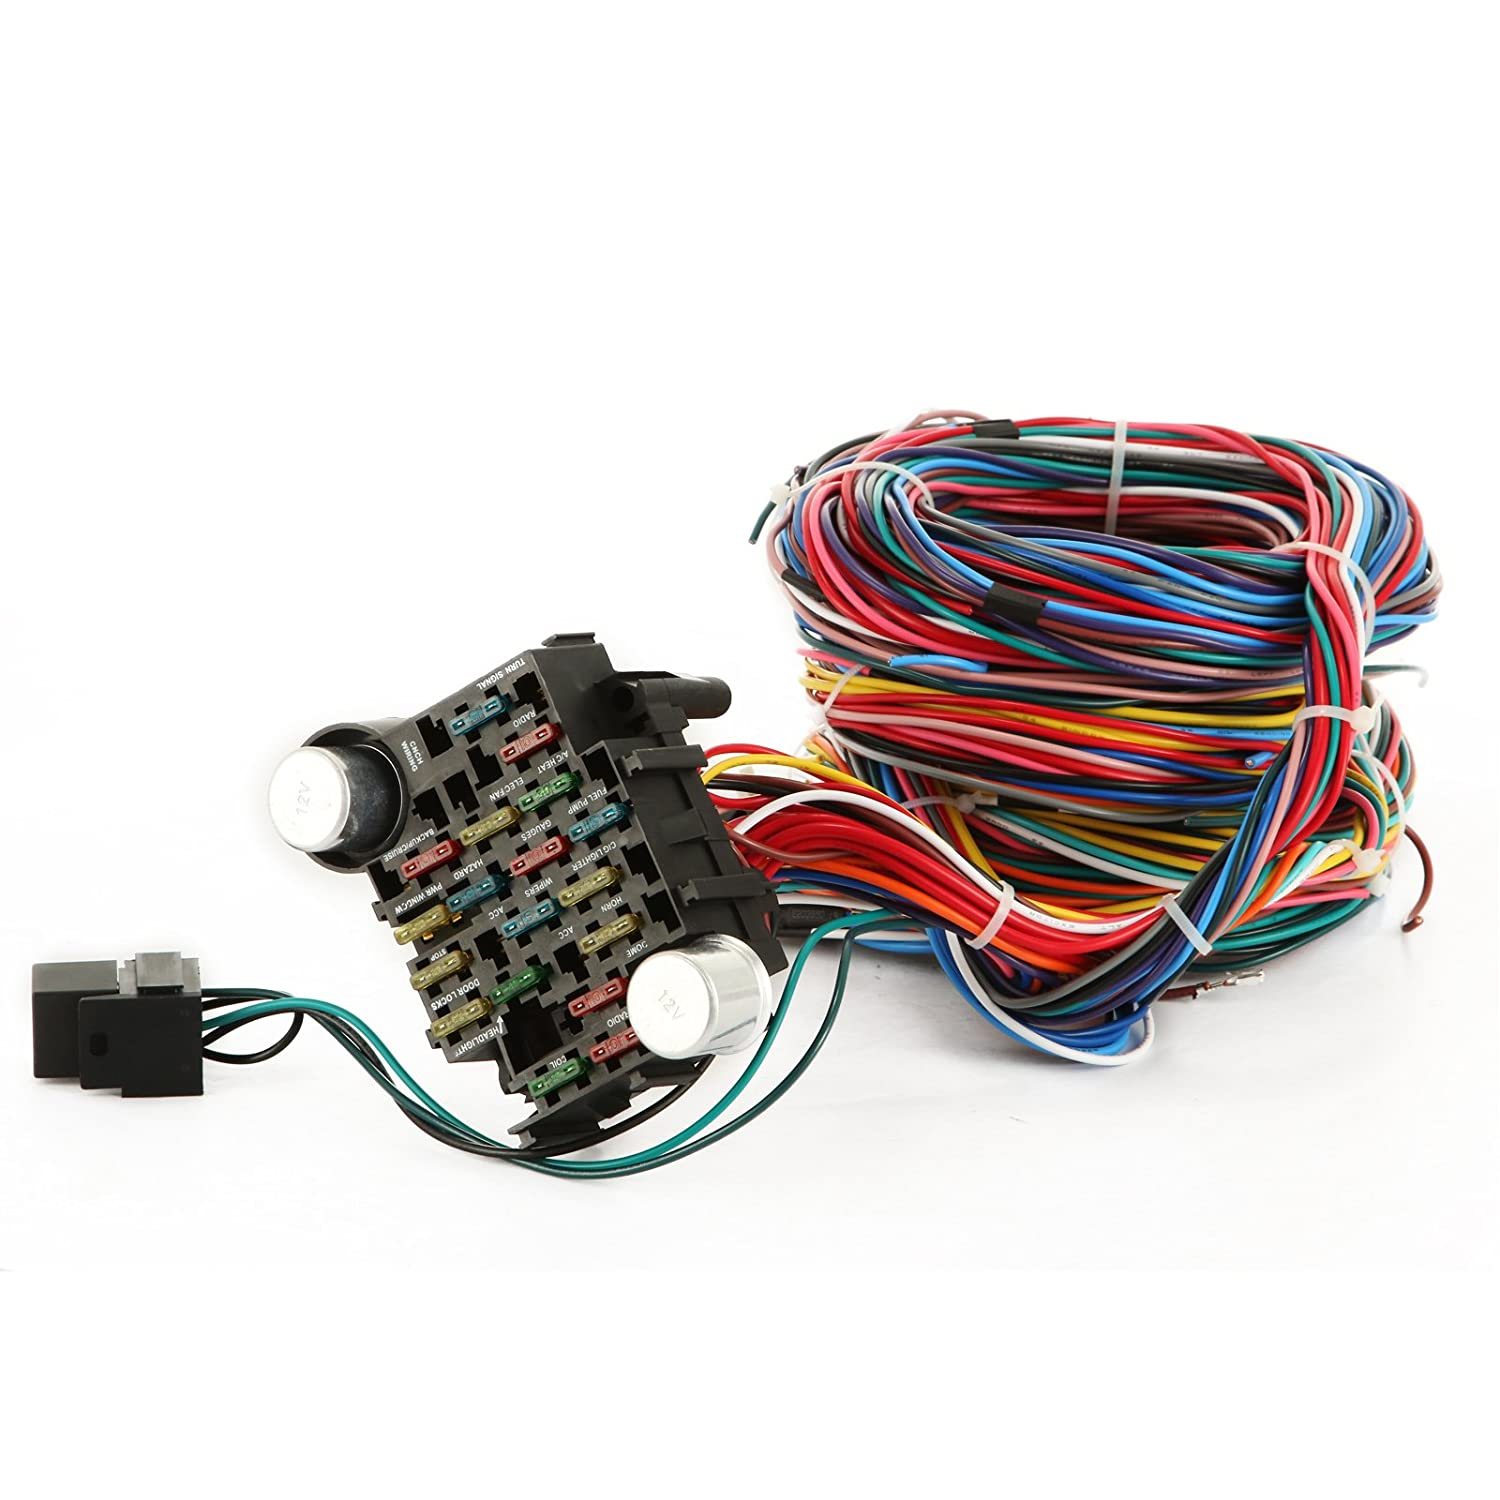 Mophorn 21 Circuit Wiring Harness Kit Long Wires Painless Diagram Mopar Standard Color For Chevy Hotrods Ford Chrysler